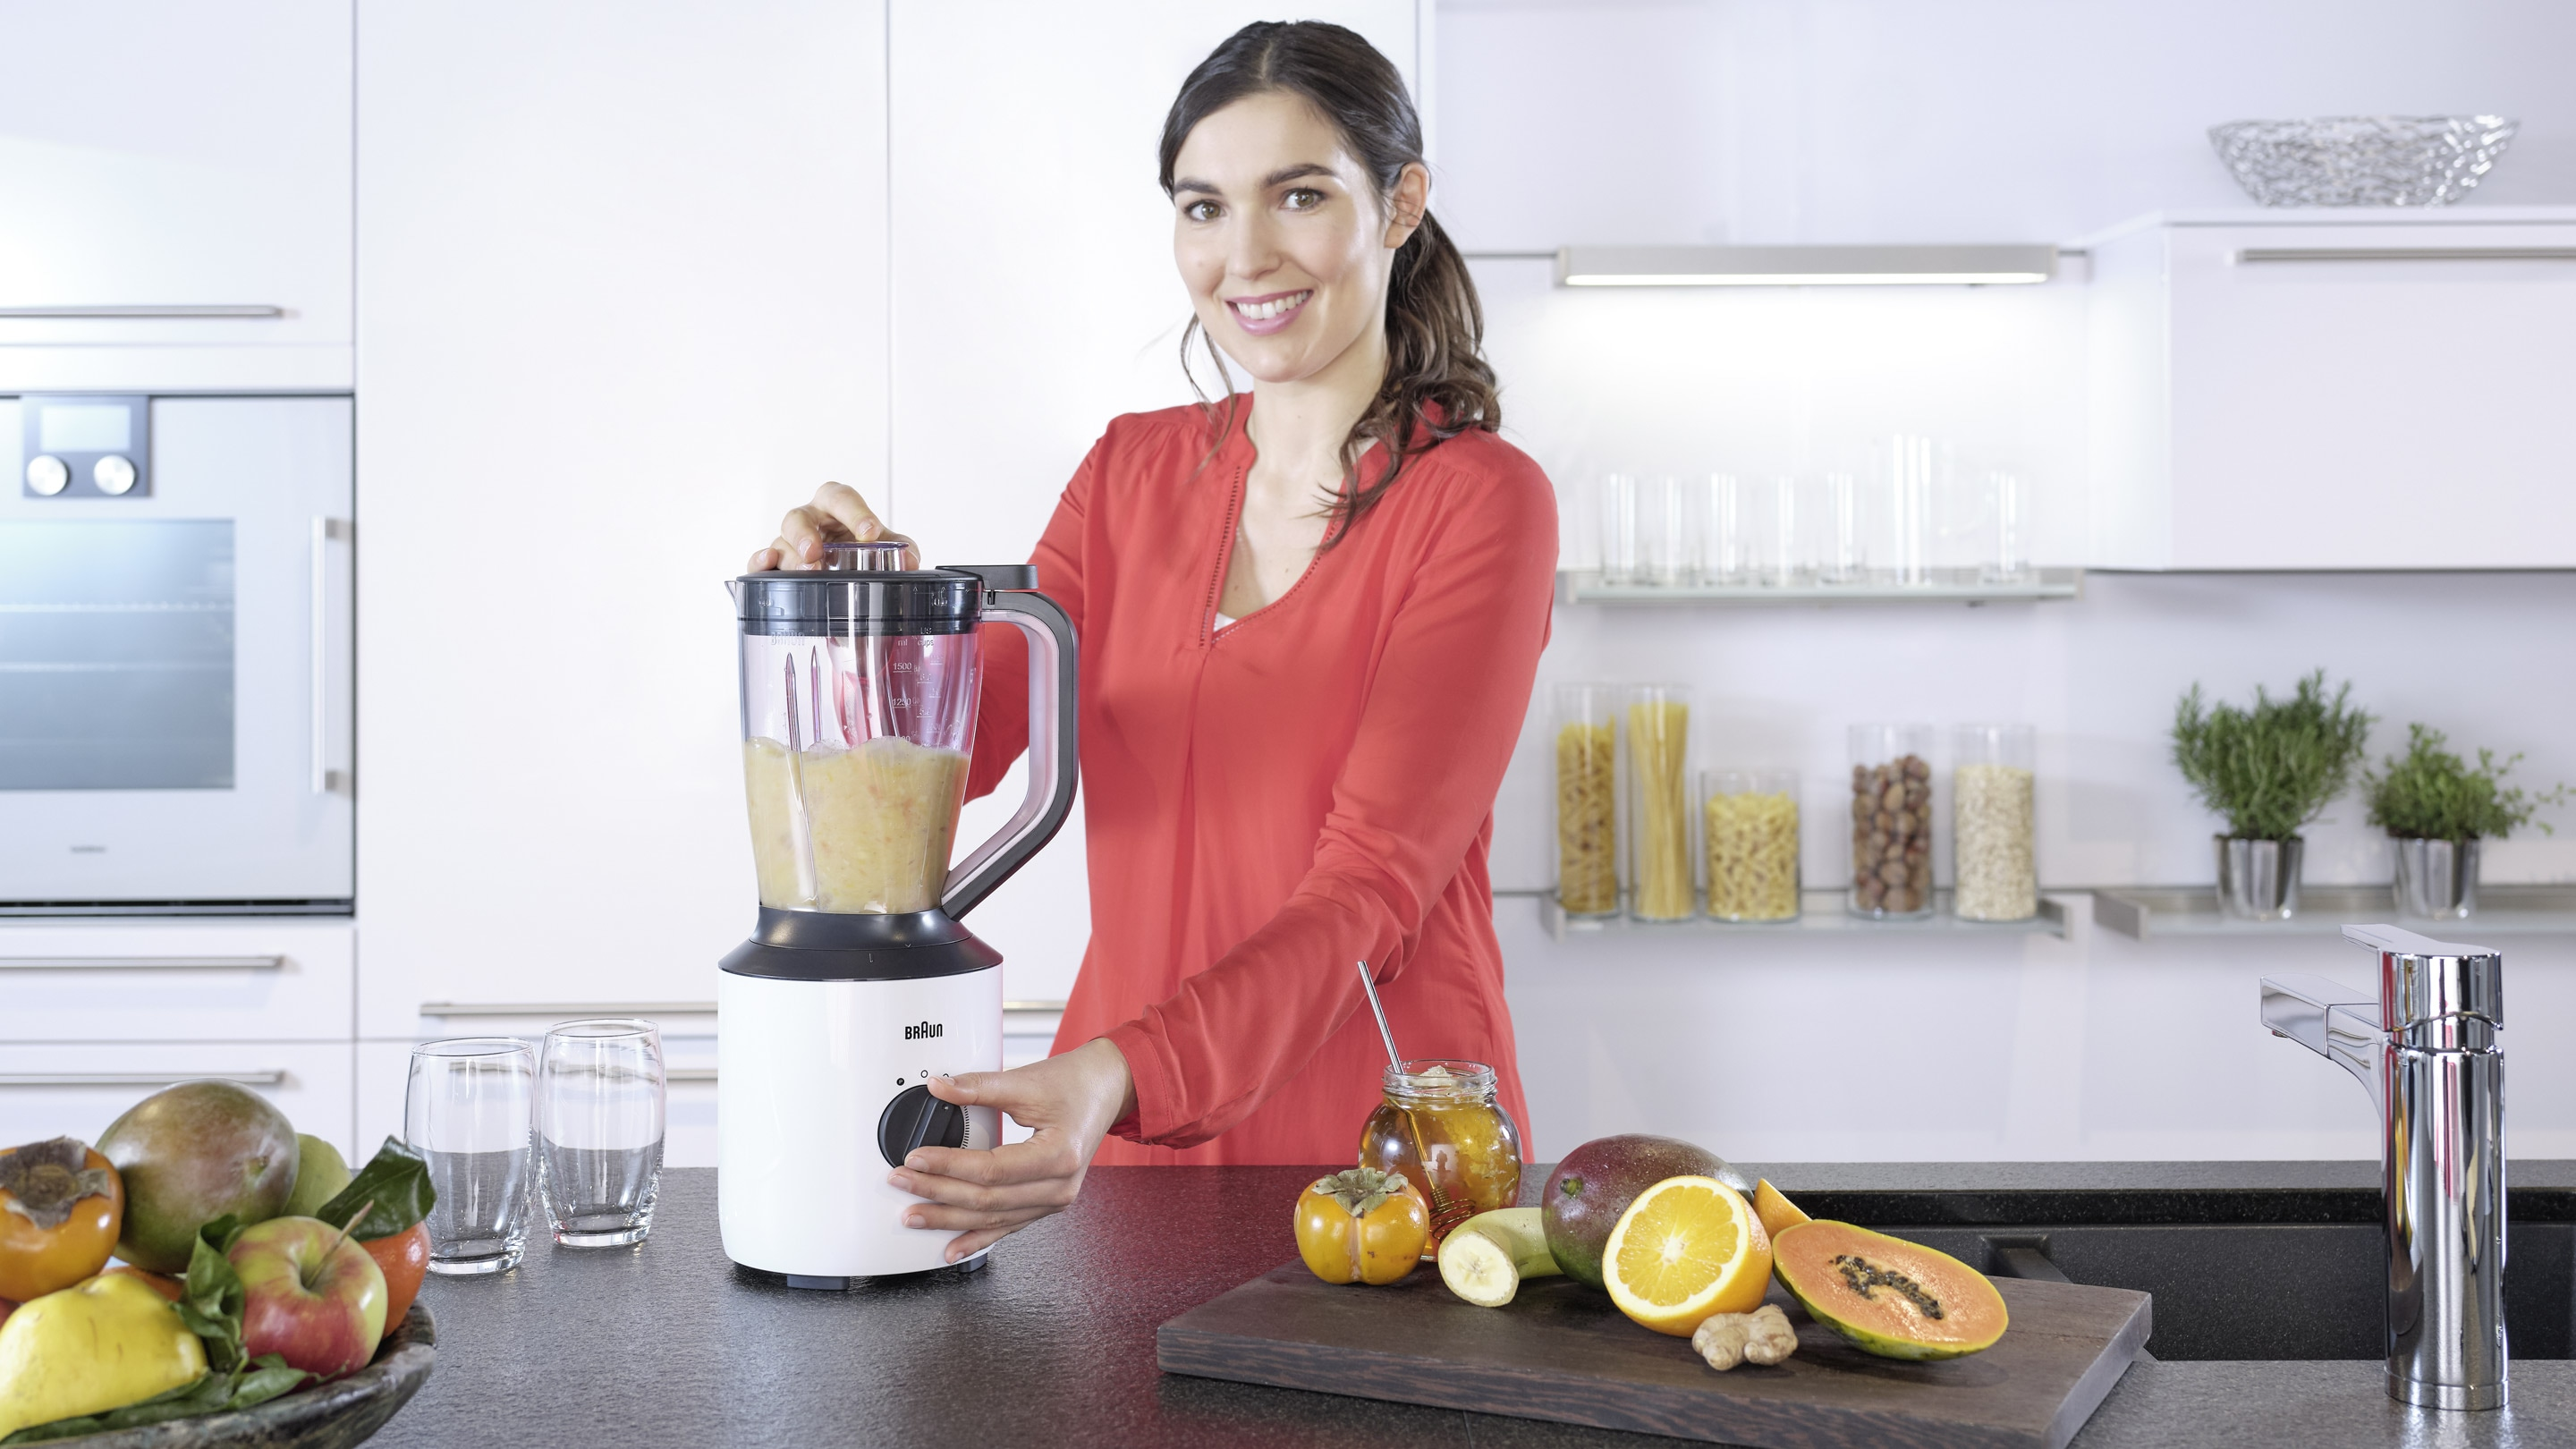 Braun PowerBlend 3 jugblender in use